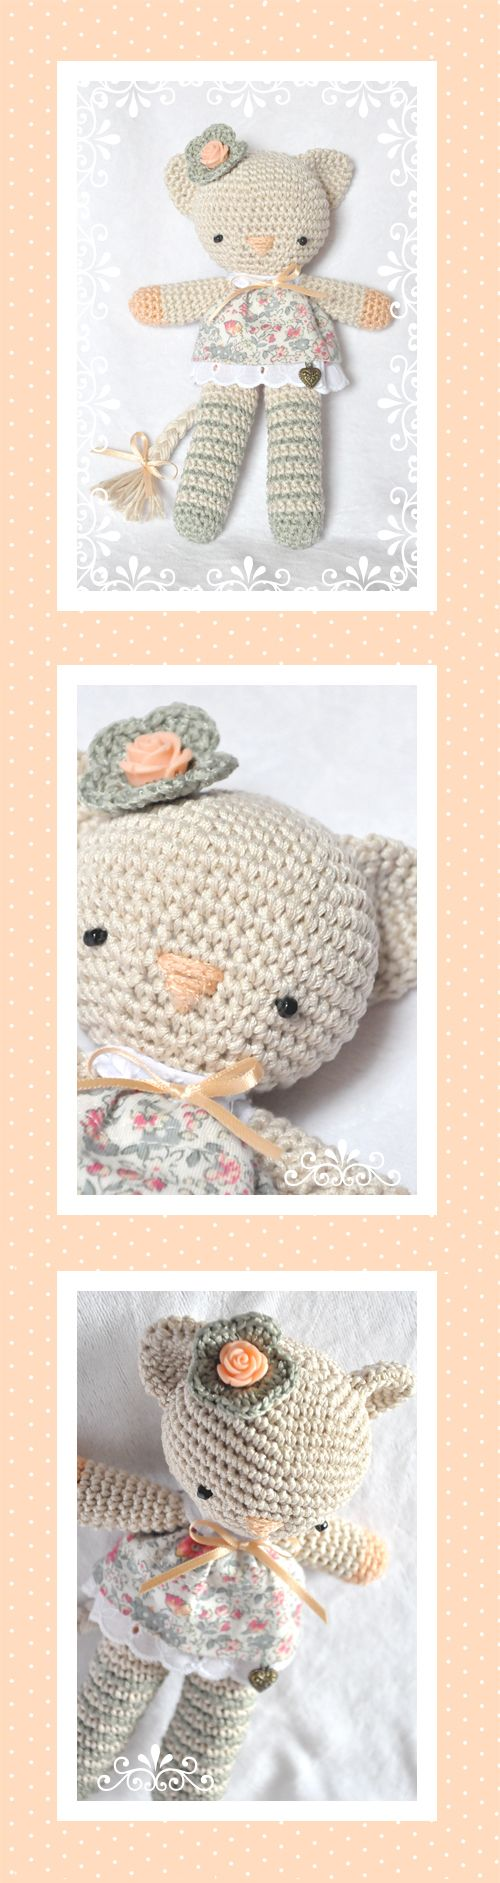 235 best Haken knuffels / / crochet cuddly toys images on Pinterest ...